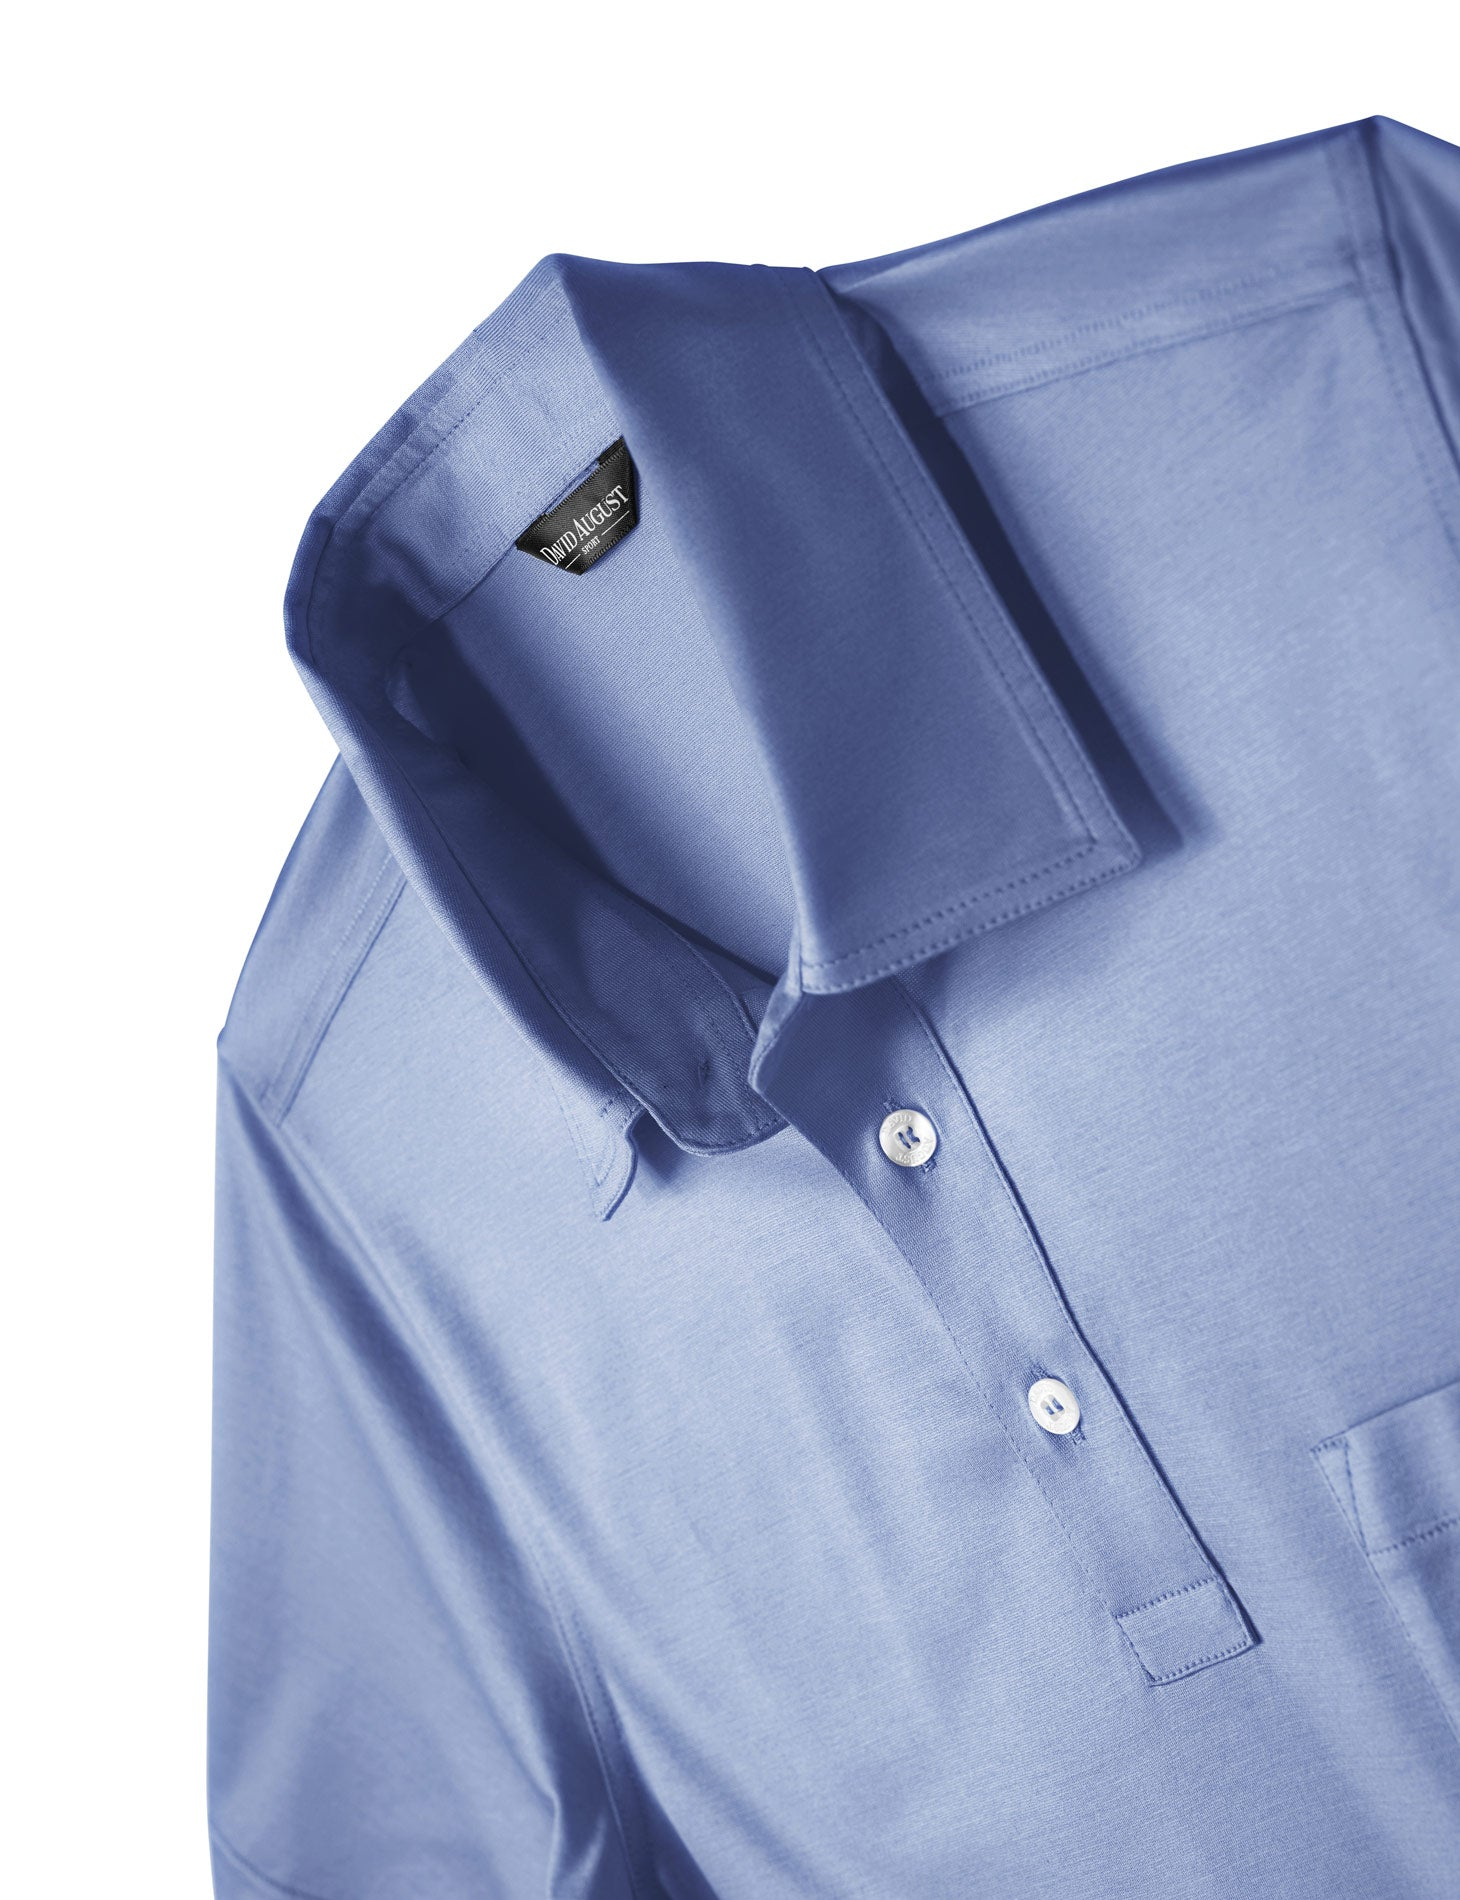 Luxury Mercerized Cotton Polo in Periwinkle